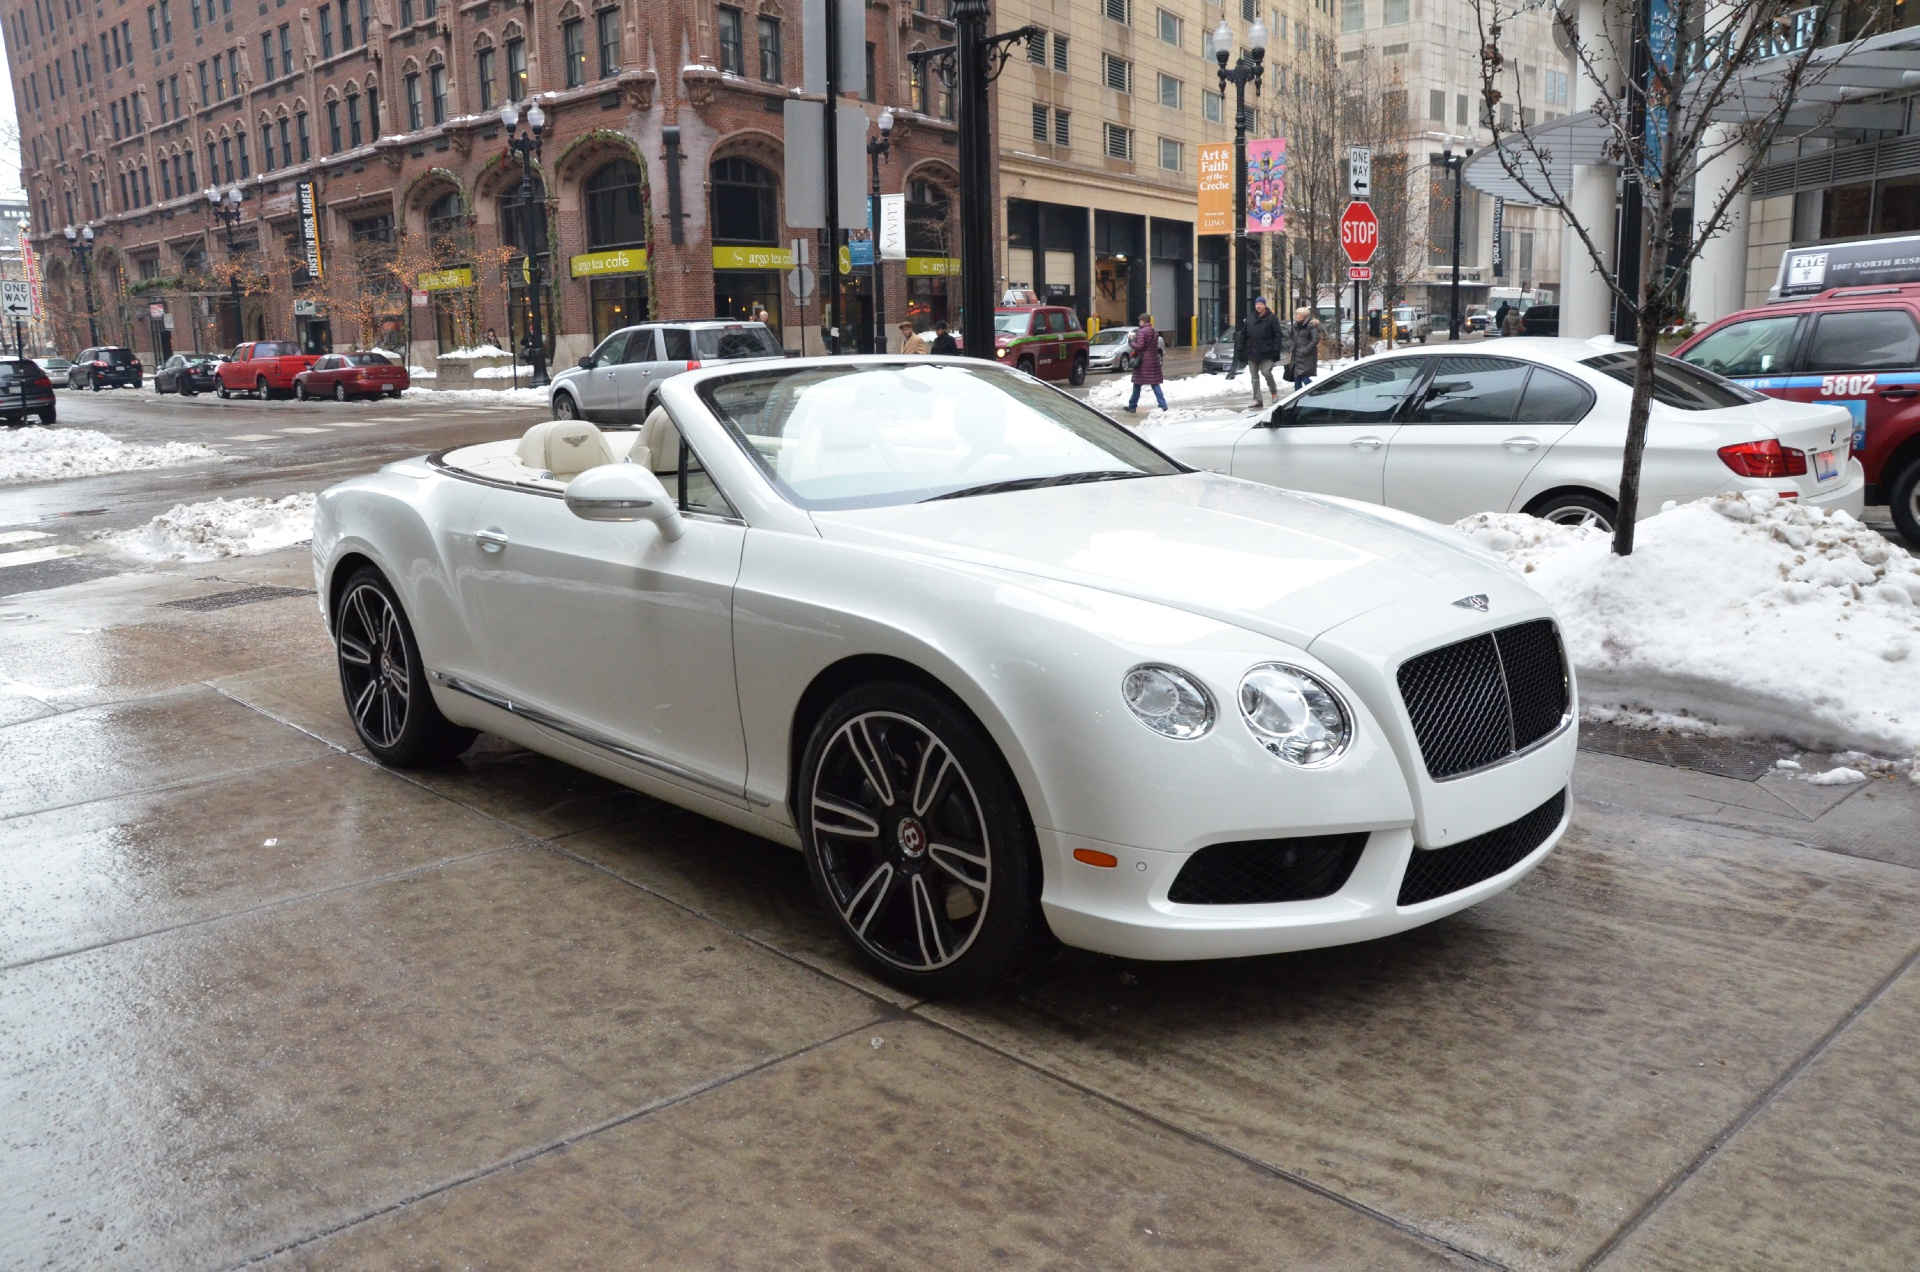 2014 Bentley Continental GTC V8 Stock B569 S for sale near Chicago